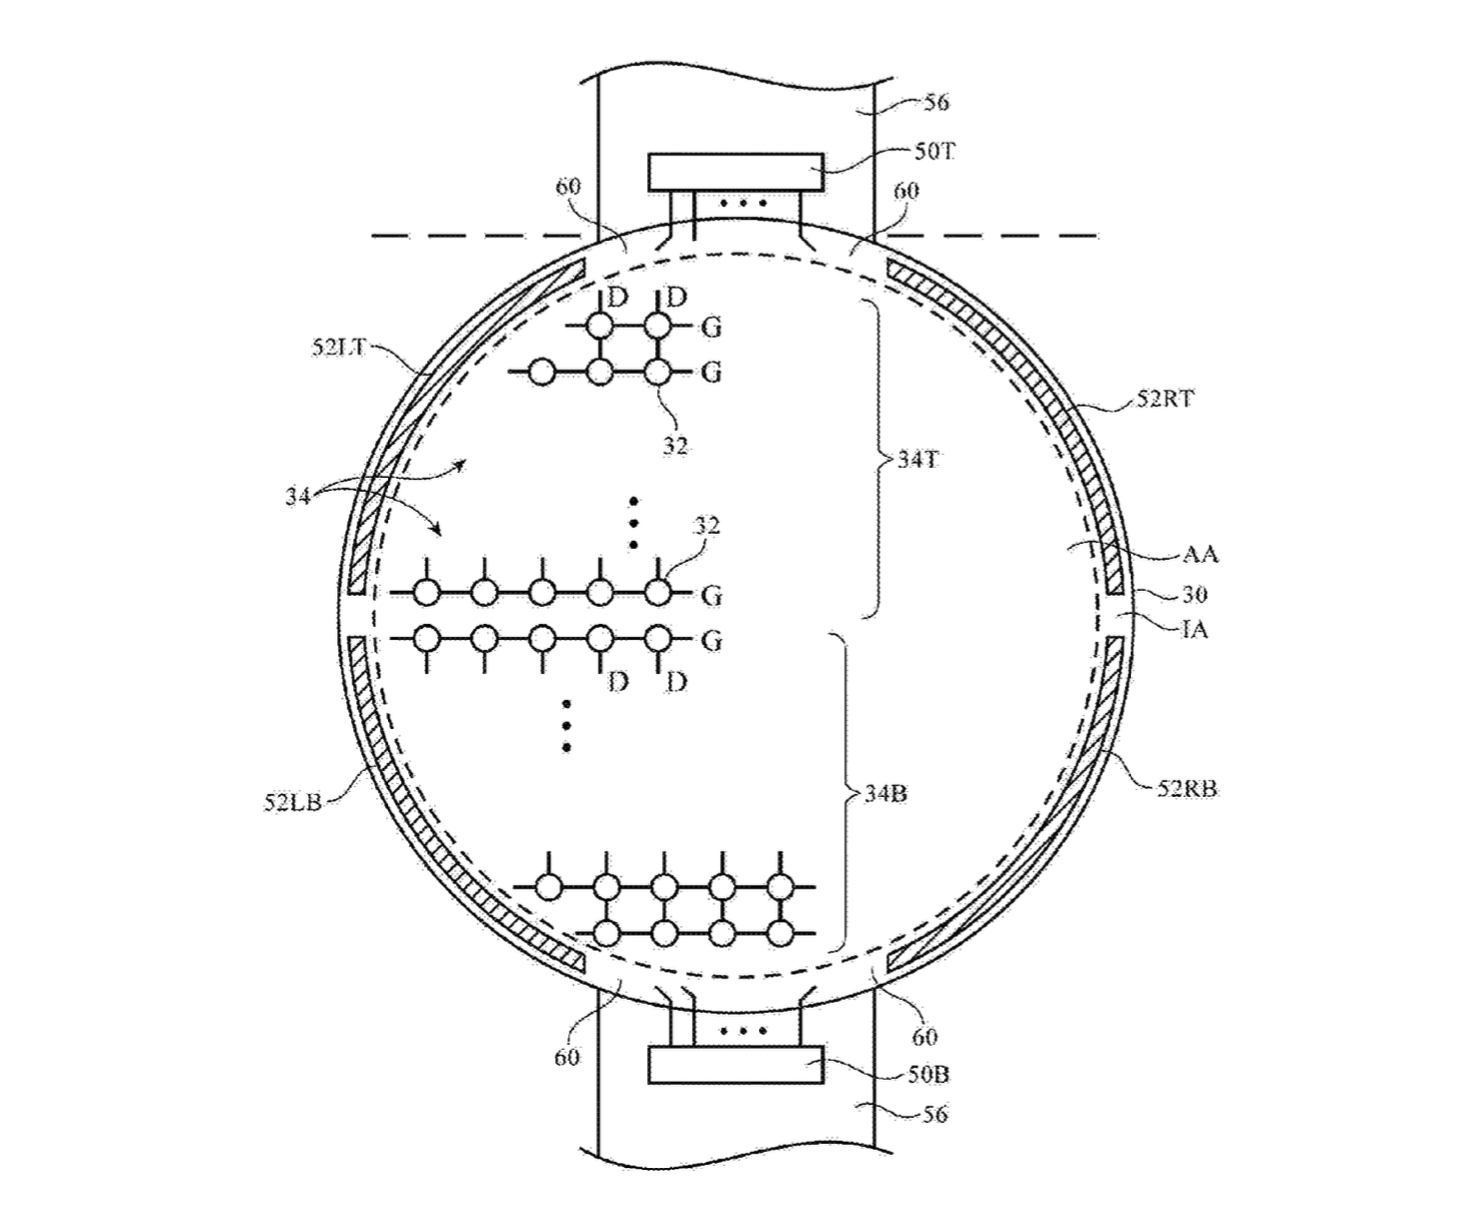 The Next Apple Watch Could Have A Circular Display